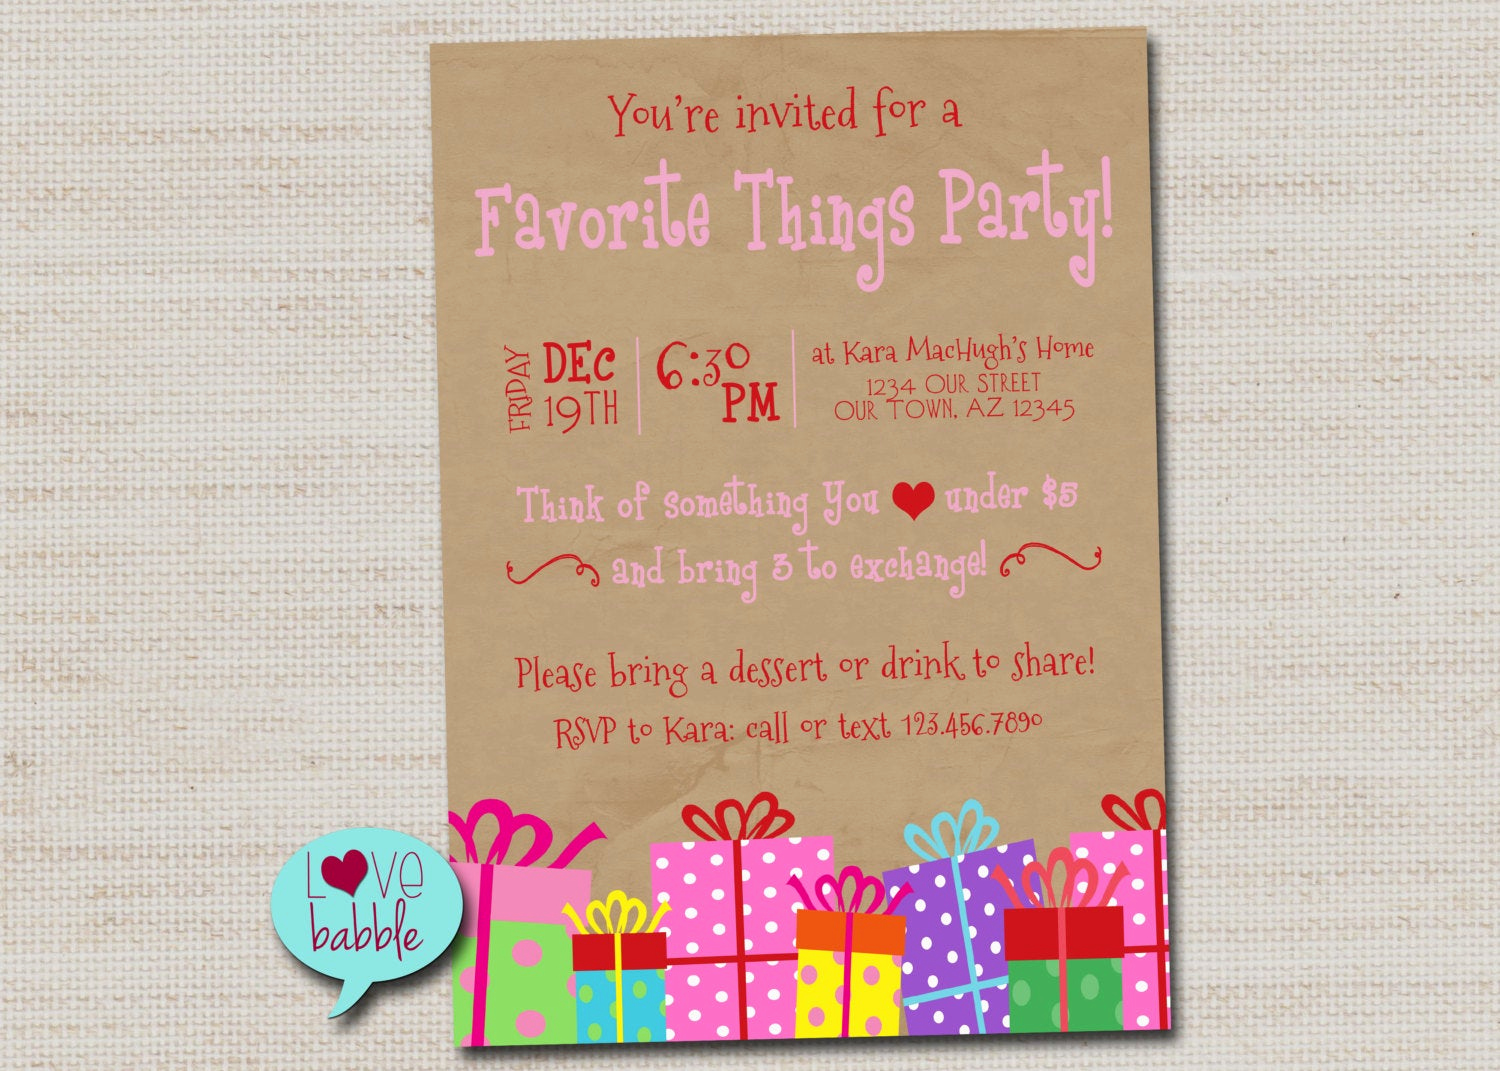 Favorite Things Party Invitation Unique Favorite Things Cookie Swap White Elephant Christmas Party